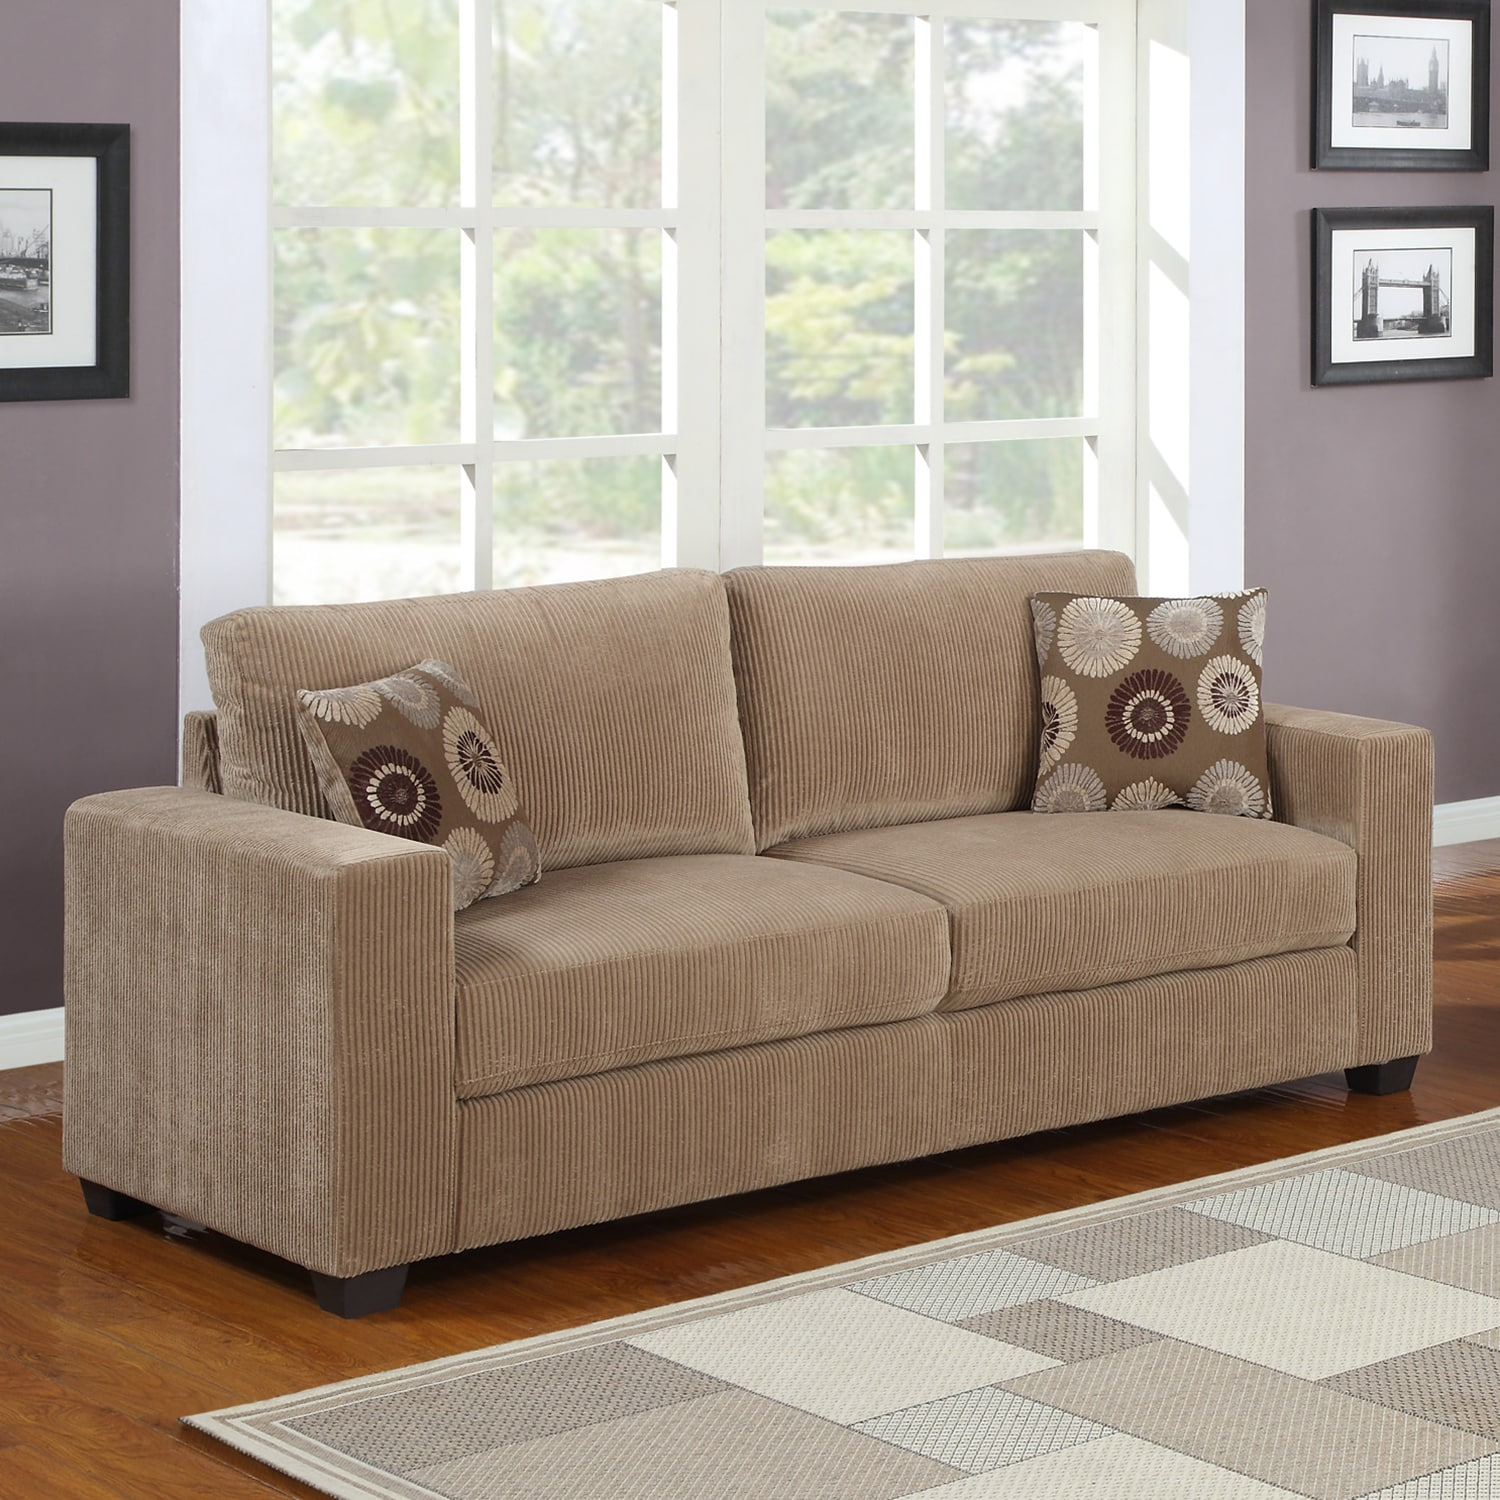 Colette brown corduroy sofa overstock shopping great for Brown corduroy couch